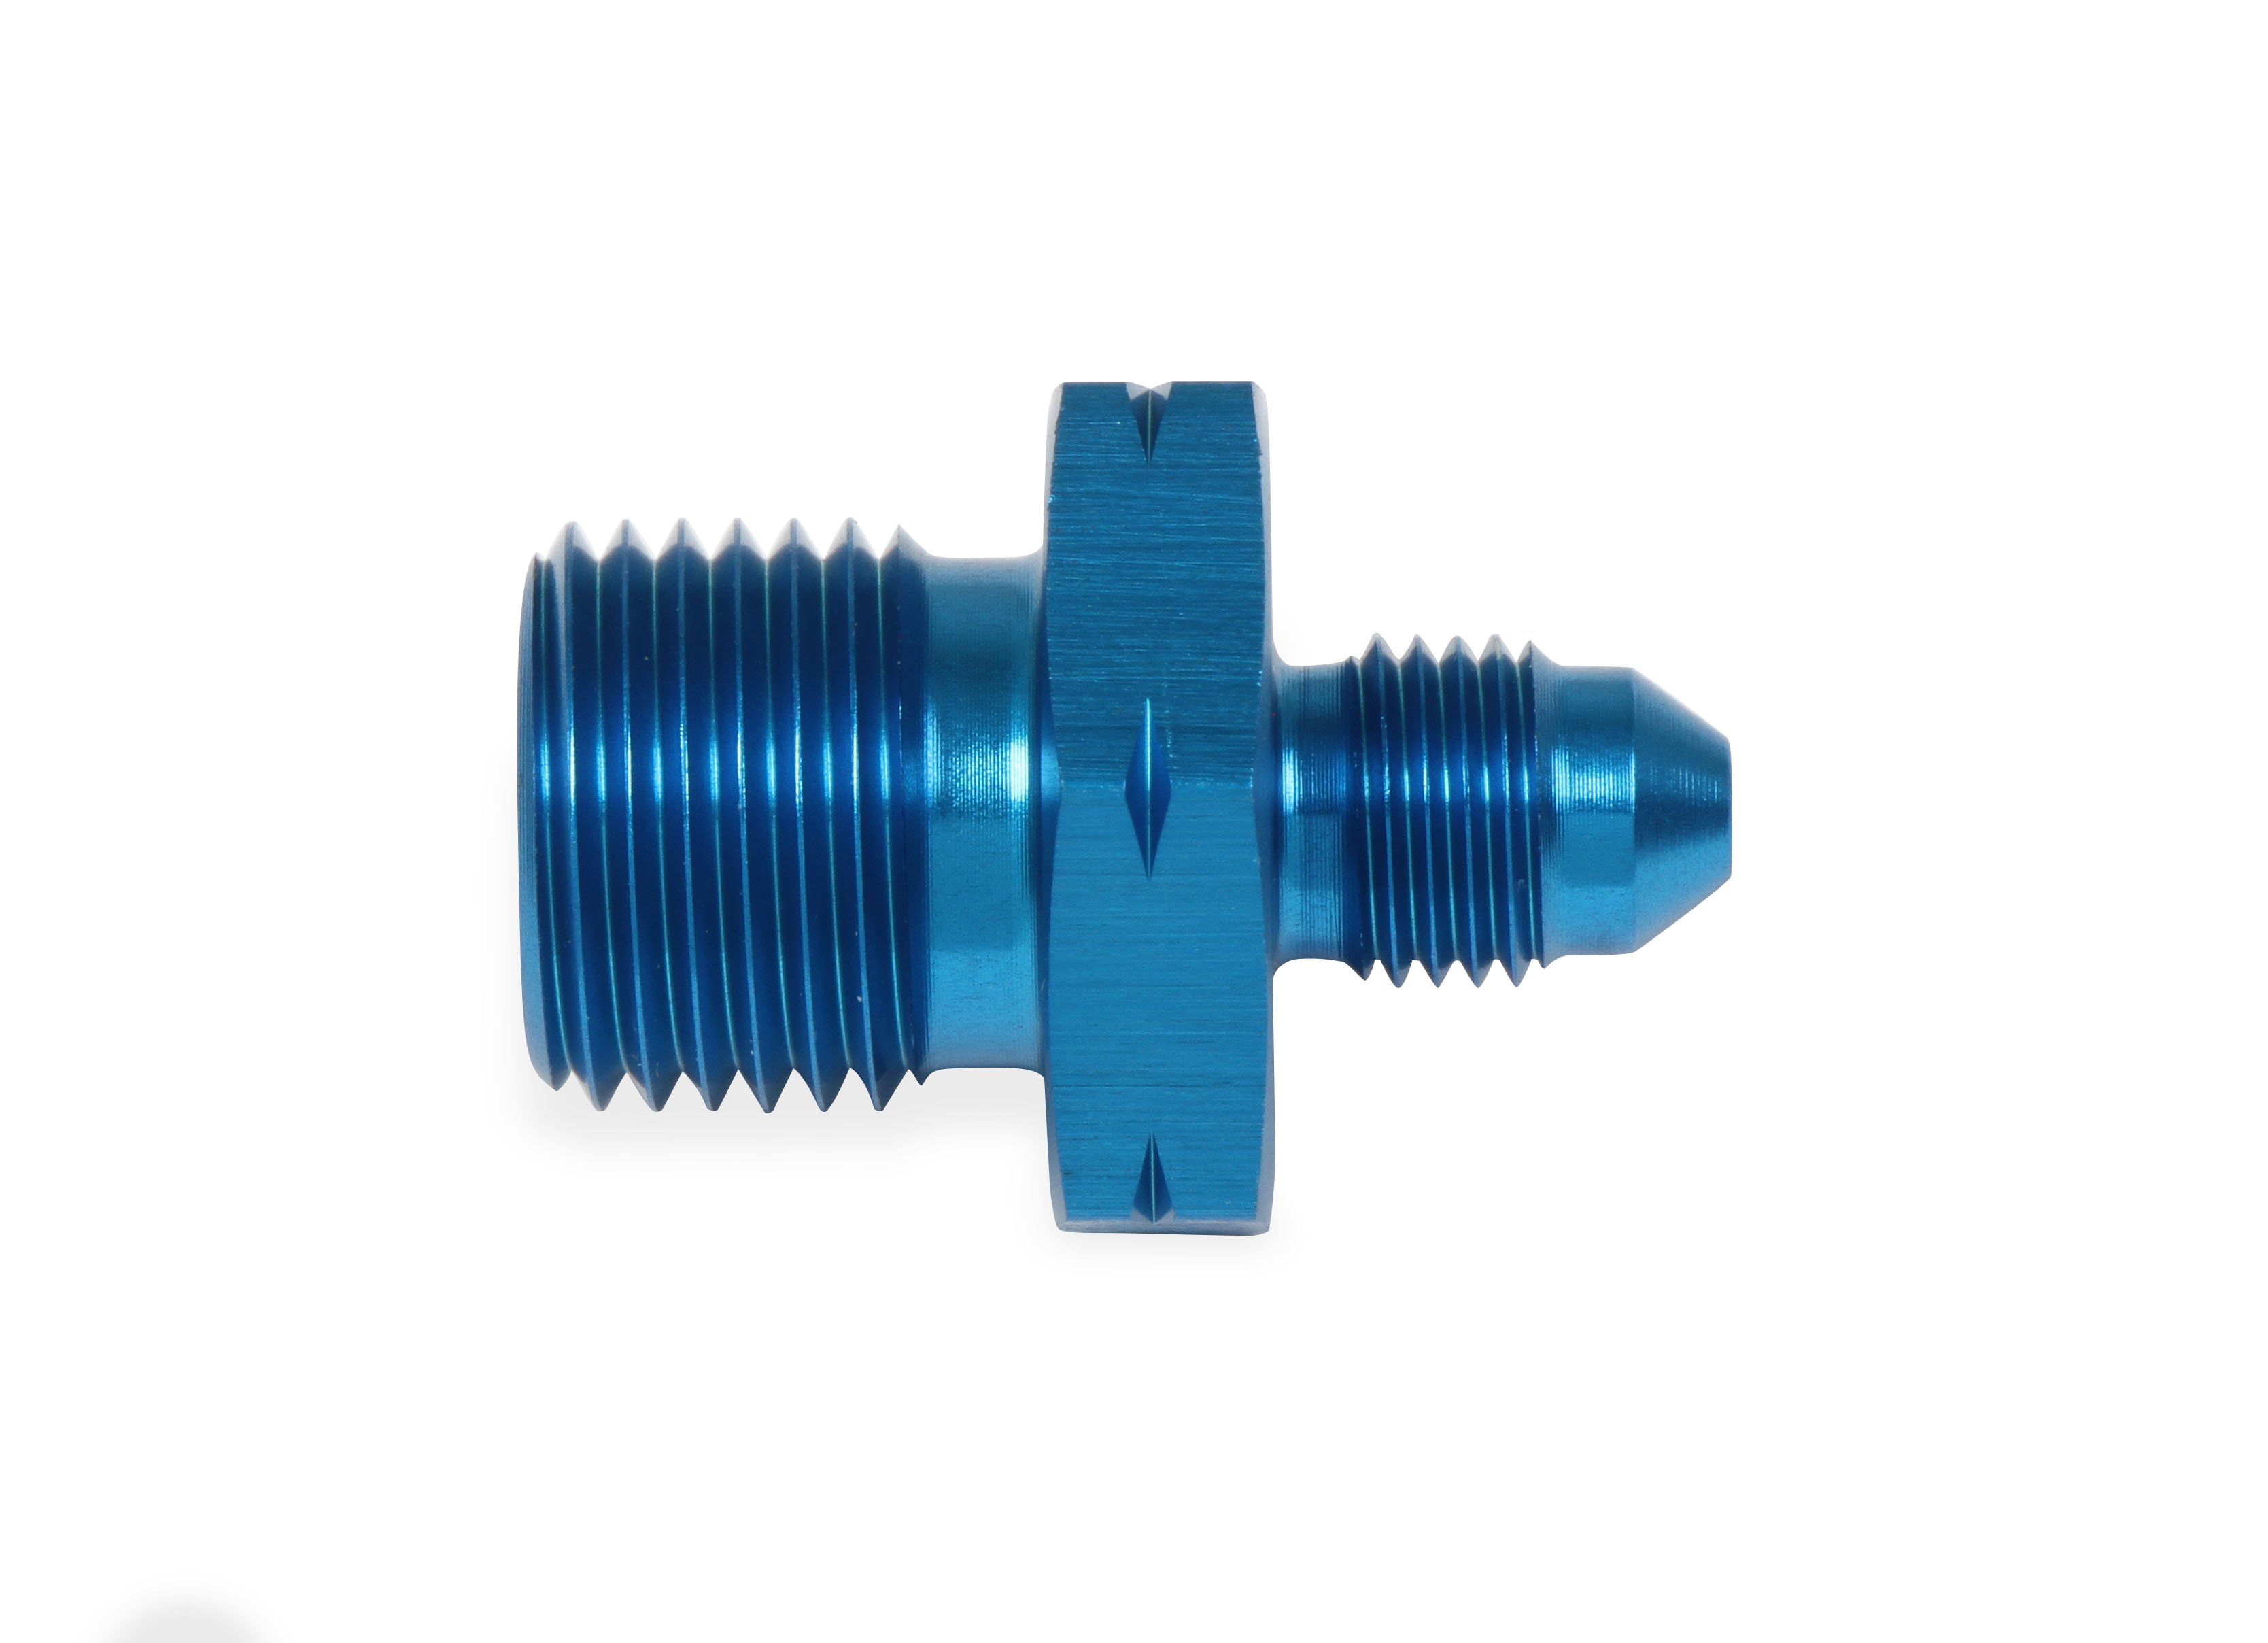 Metric M12-1.5mm to 8mm Barb Generic Blue Anodized AC PERFORMANCE Aluminum Fuel Oil Pump Inlet Straight Male M12x1.5 to 5//16 Hose Barb Fitting Adapters Bare with Aluminum Washer